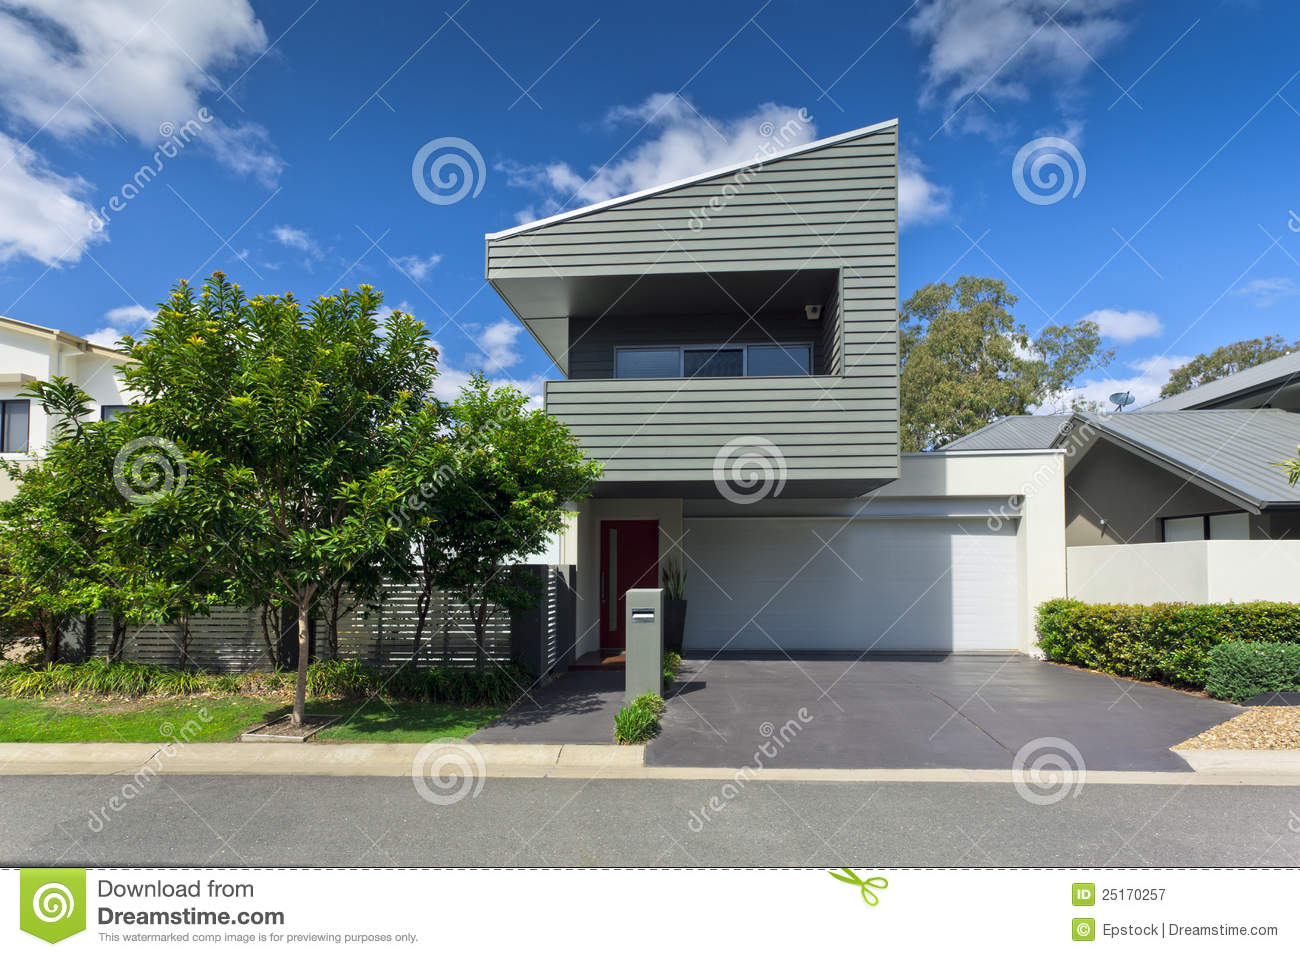 Modern House Front oyalty Free Stock Photography - Image: 25170257 - ^